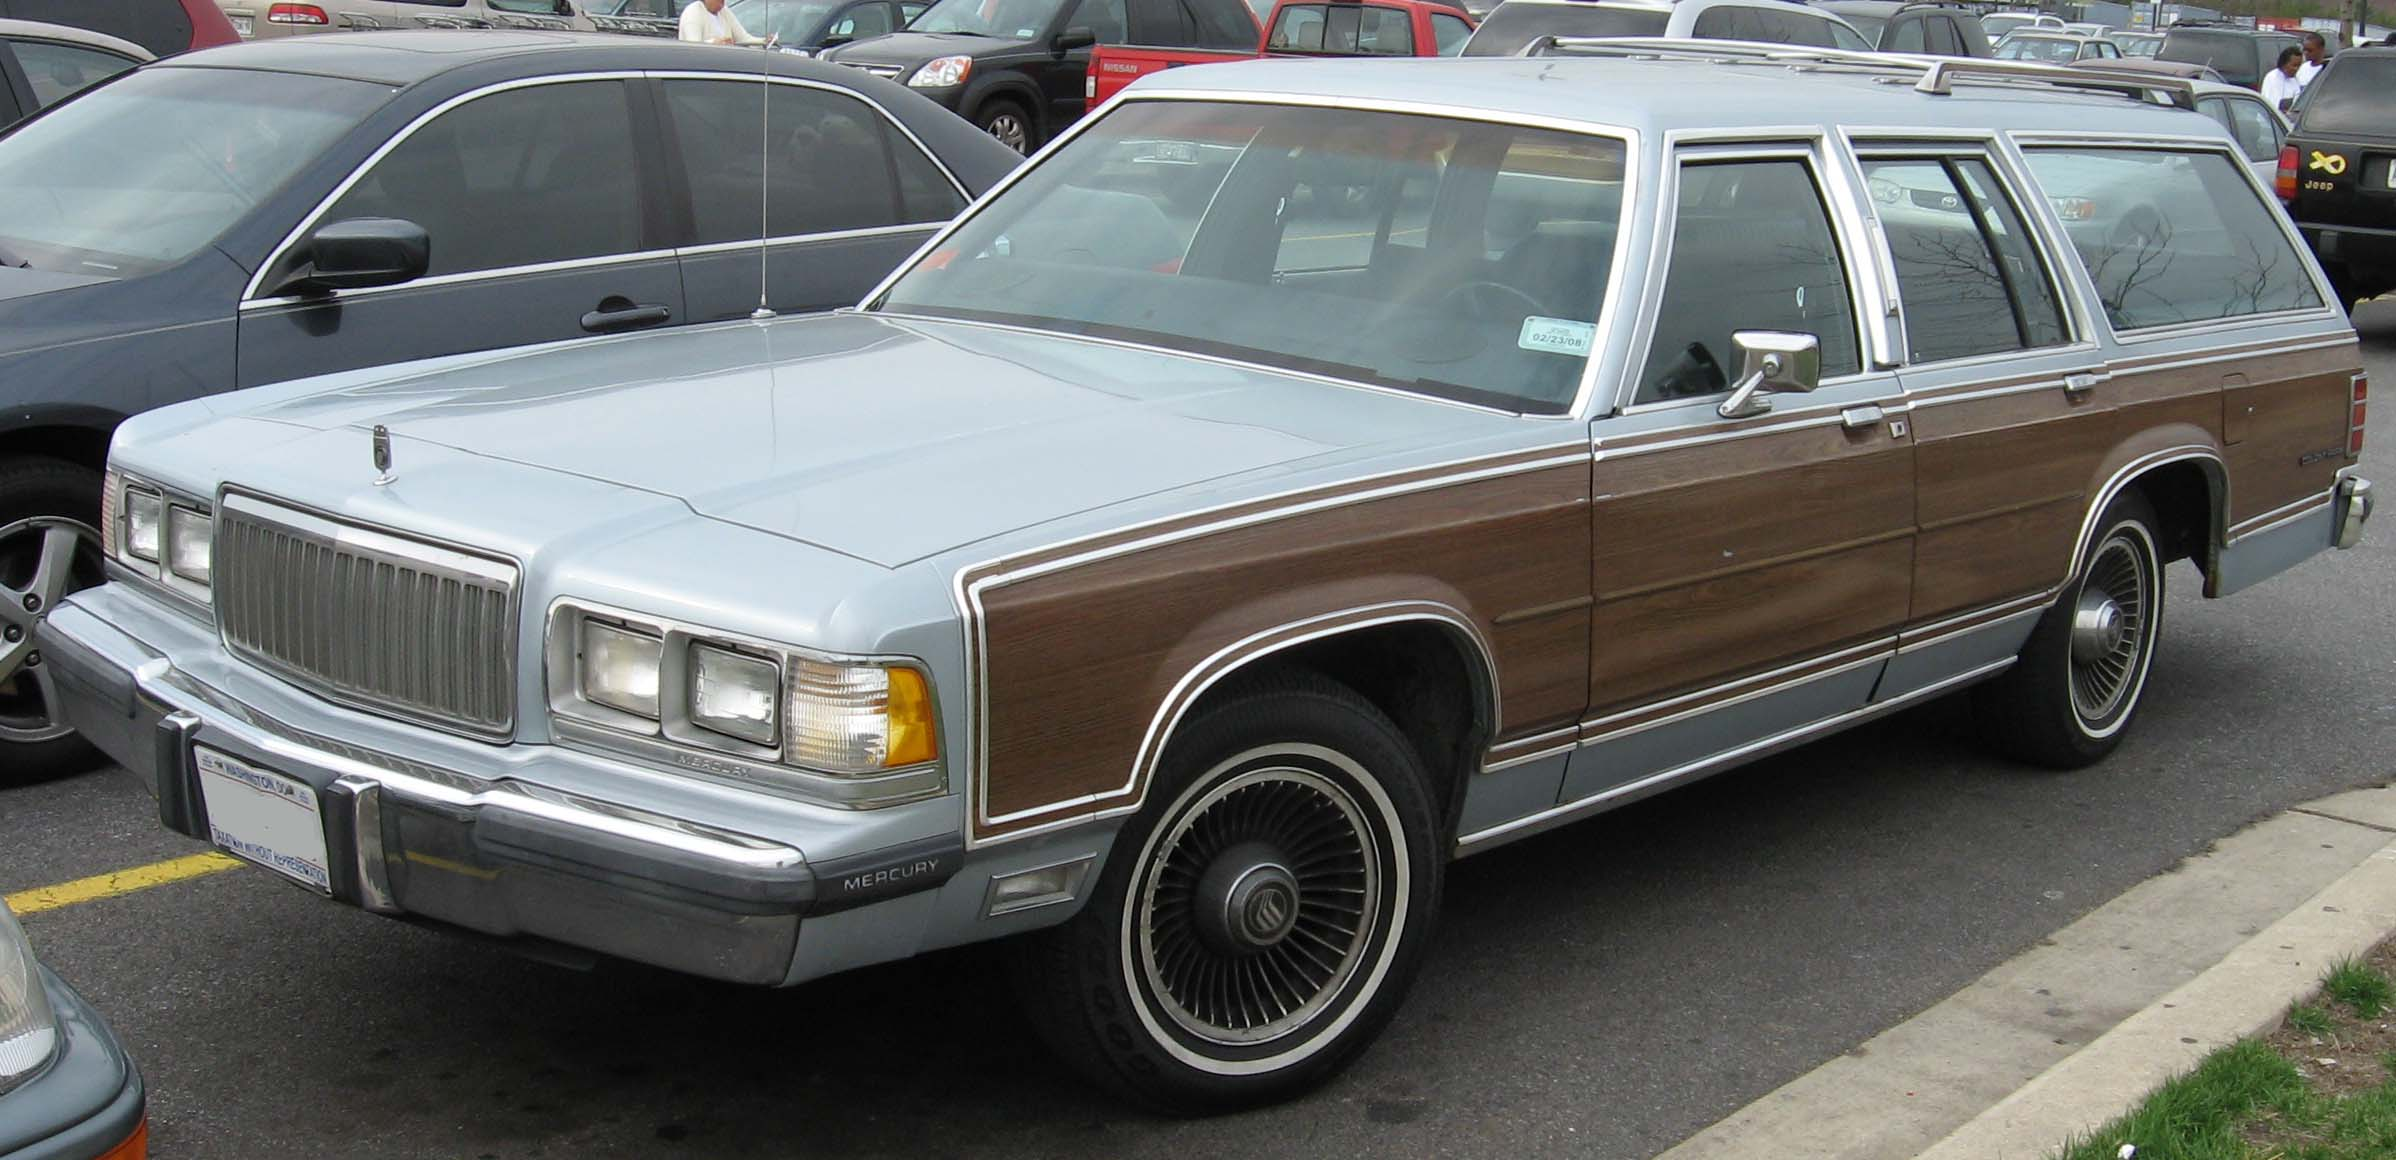 1991 Mercury Grand Marquis  Information and photos  ZombieDrive